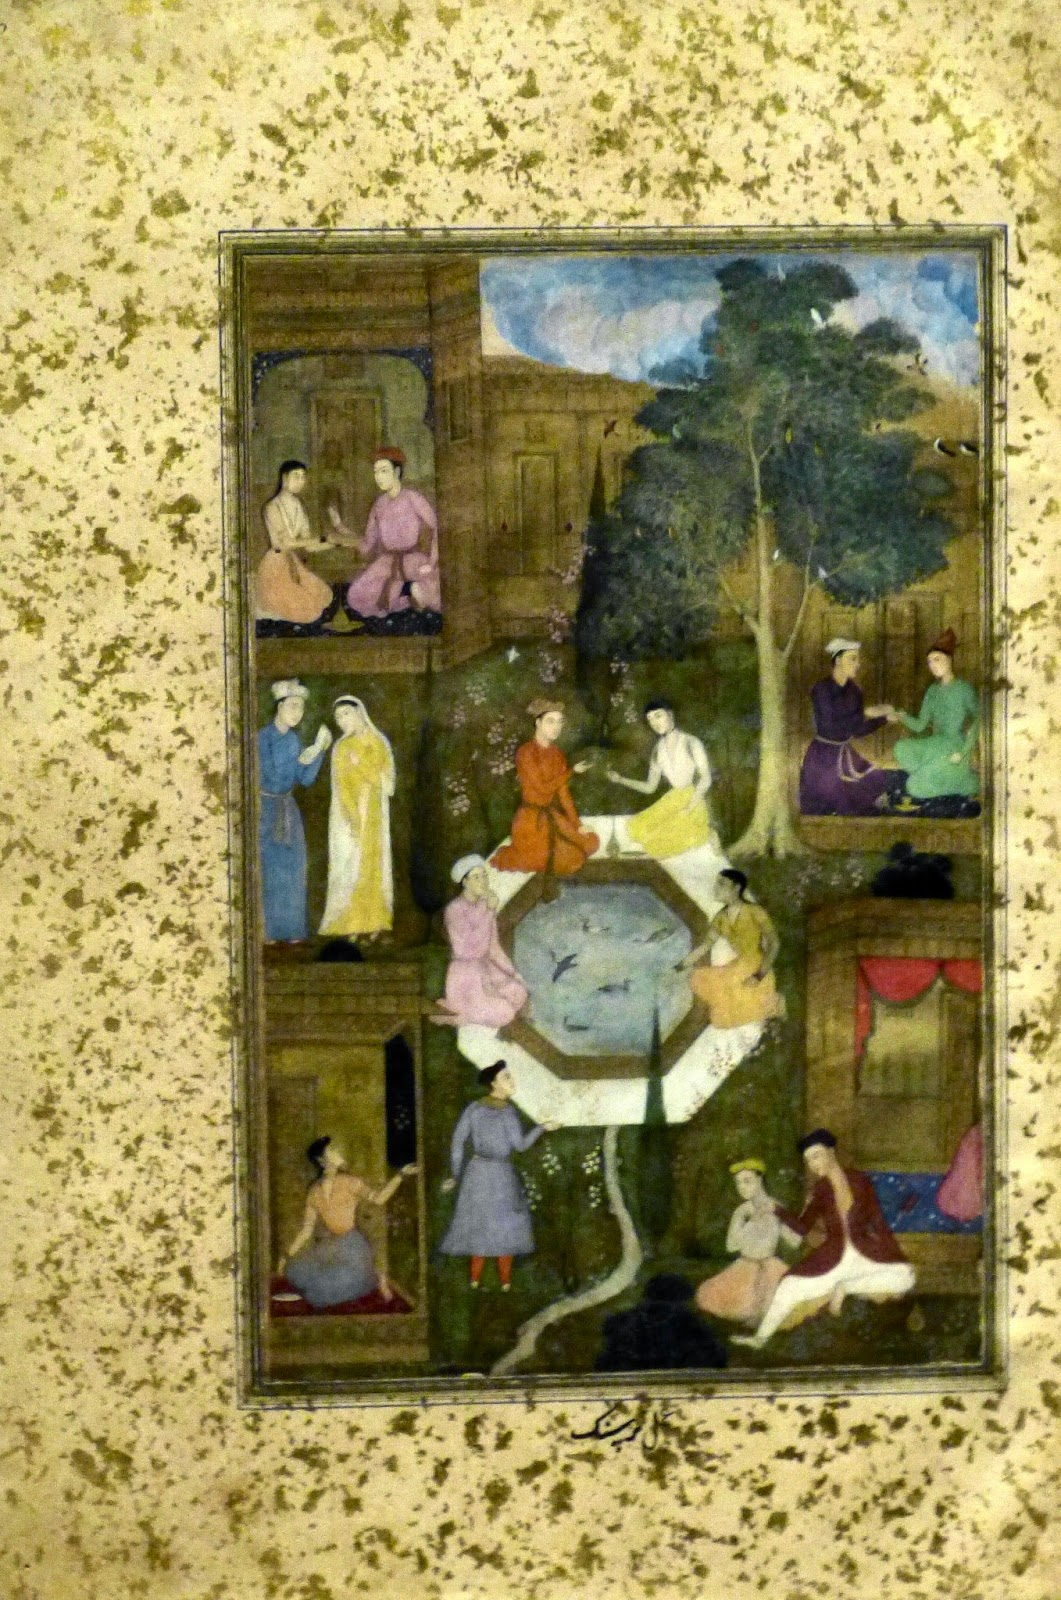 Seven couples in a garden by Bukharan artist (c1510) in  Khamsa (Quintet) of Nava'i manuscript by Mir 'Ali Sir Neva'i Haeva'i (1492)